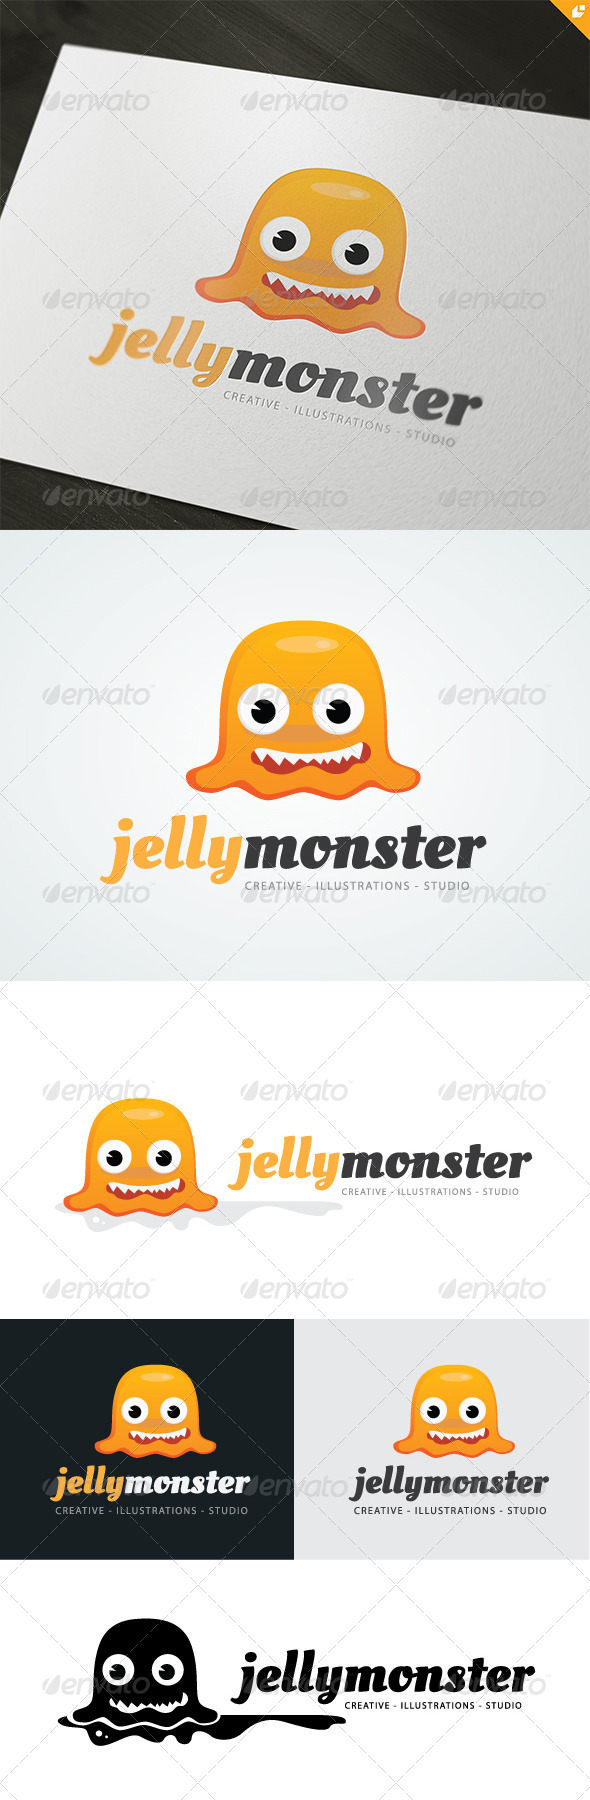 Jelly Monster Logo - 3d Abstract